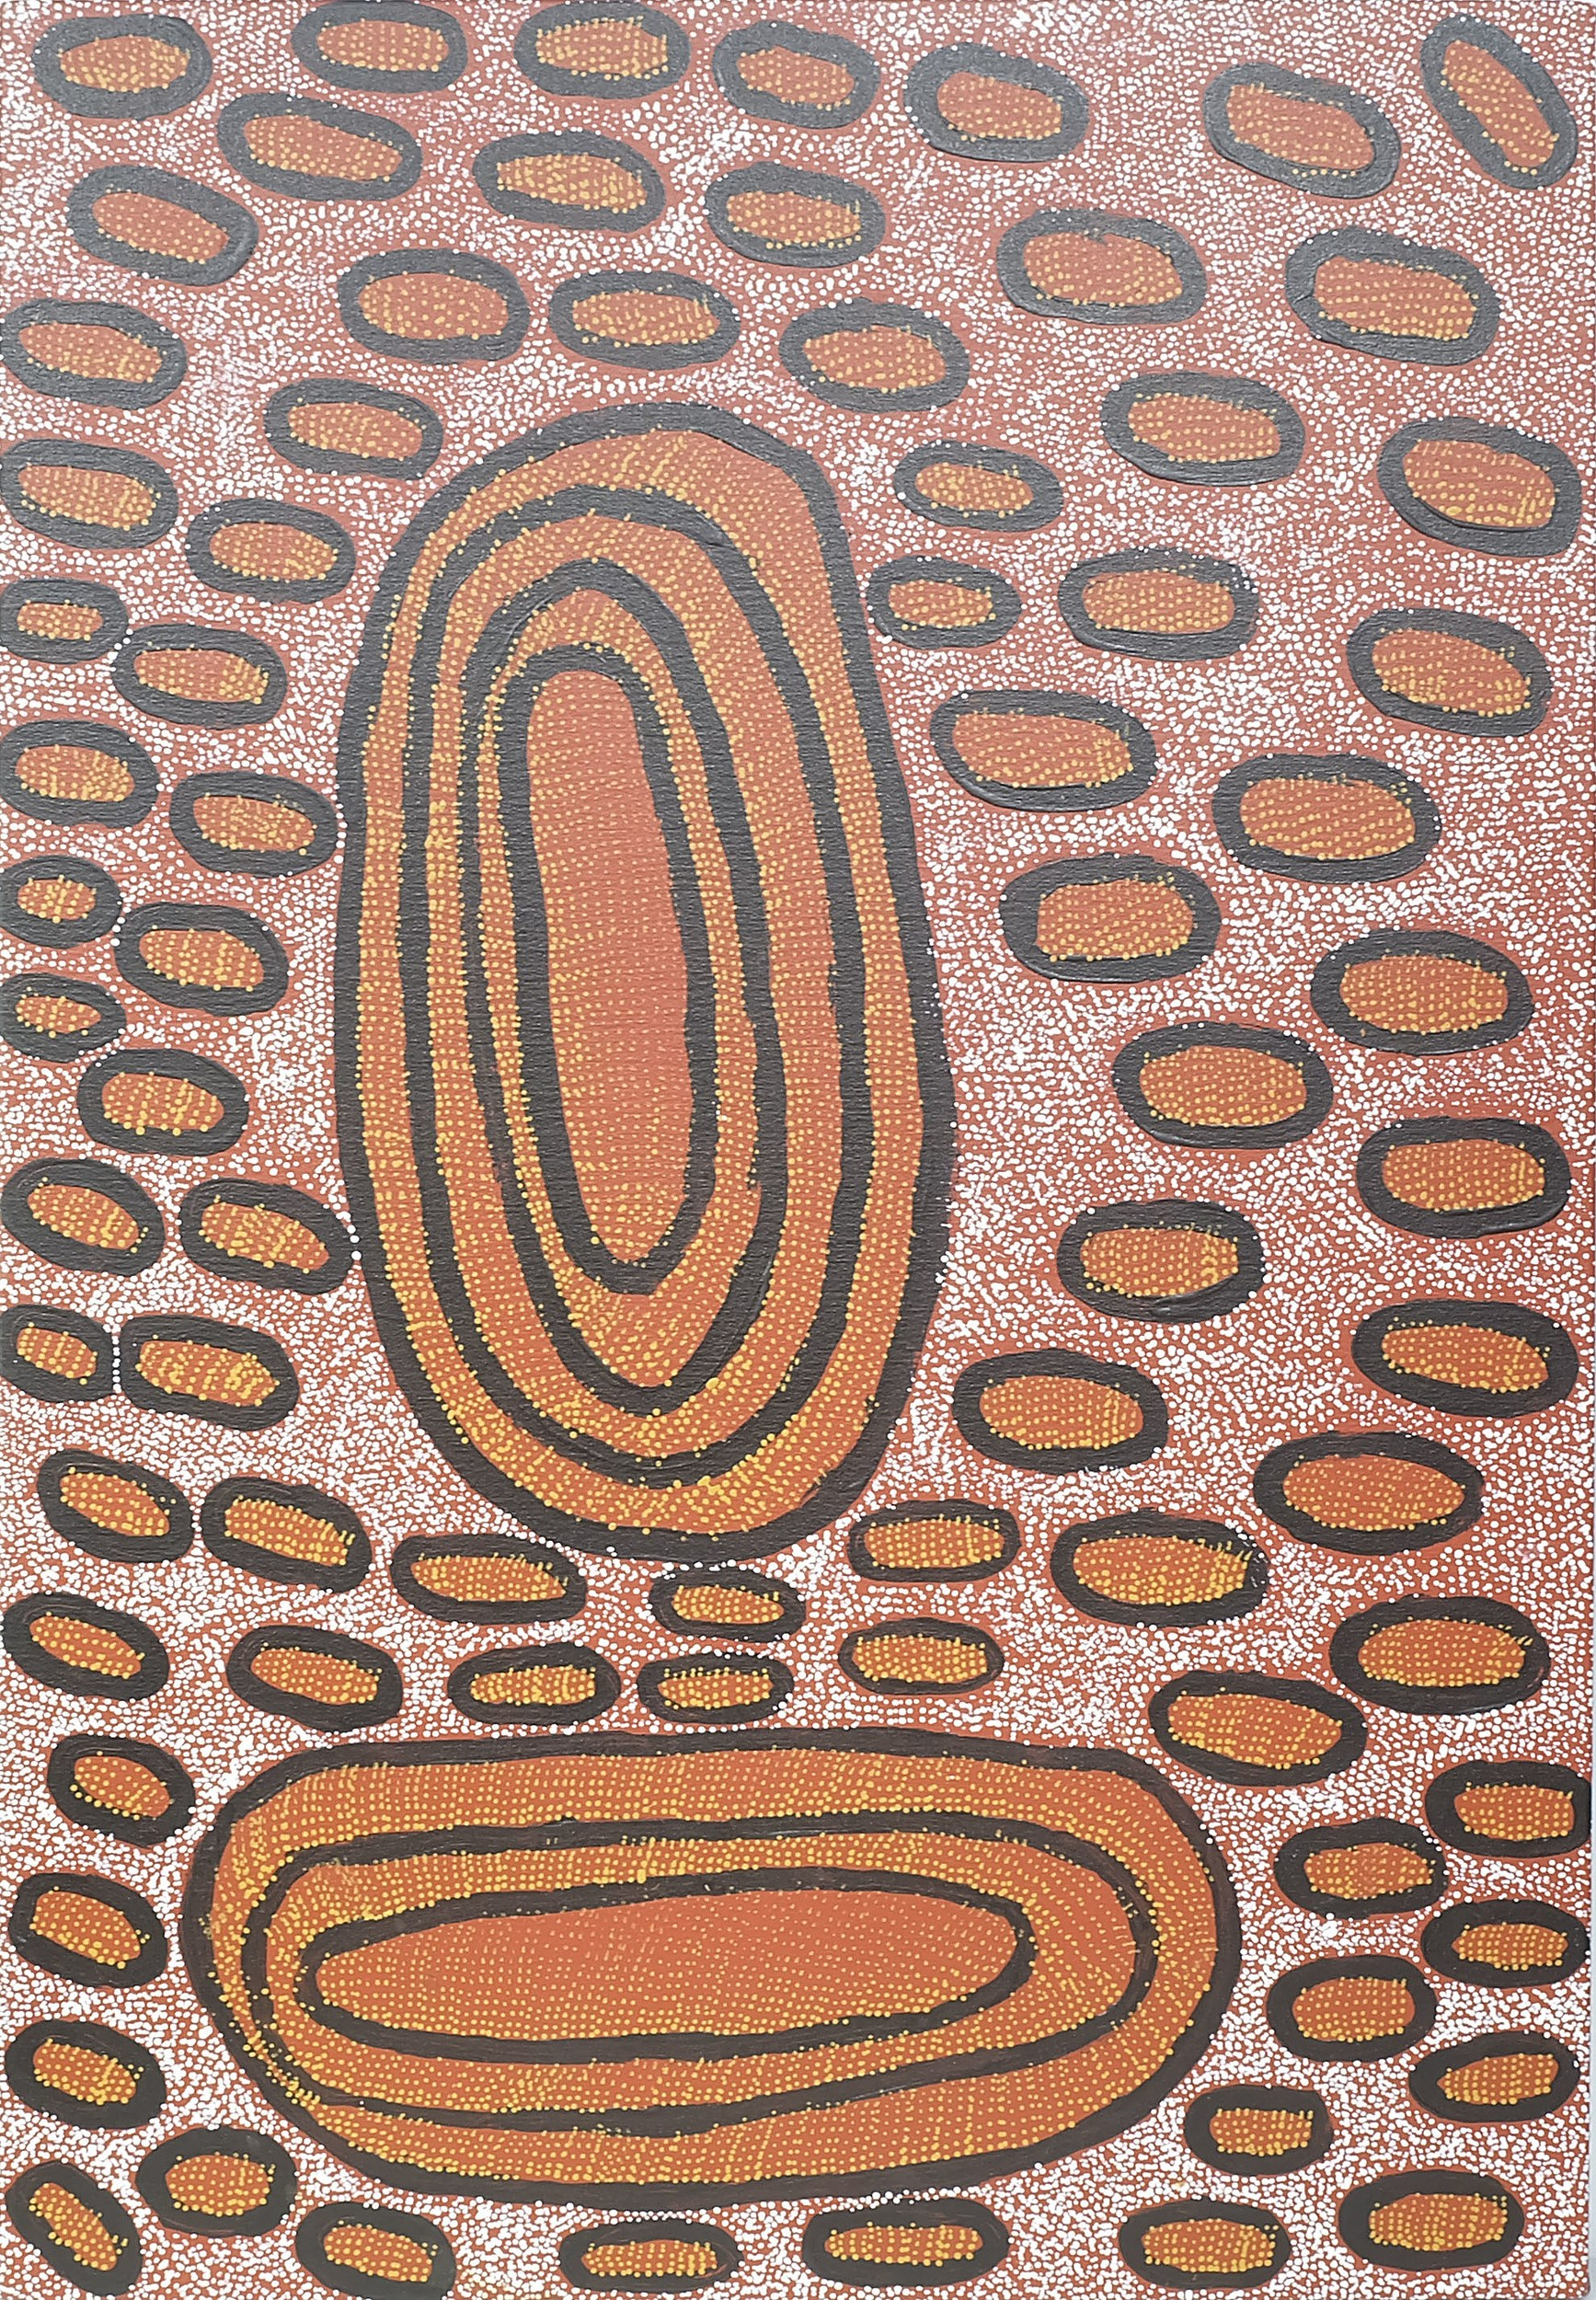 'Ngoia Pollard Napaltjarri (1948-) Swamps Near Nyrripi Oil on Canvas'